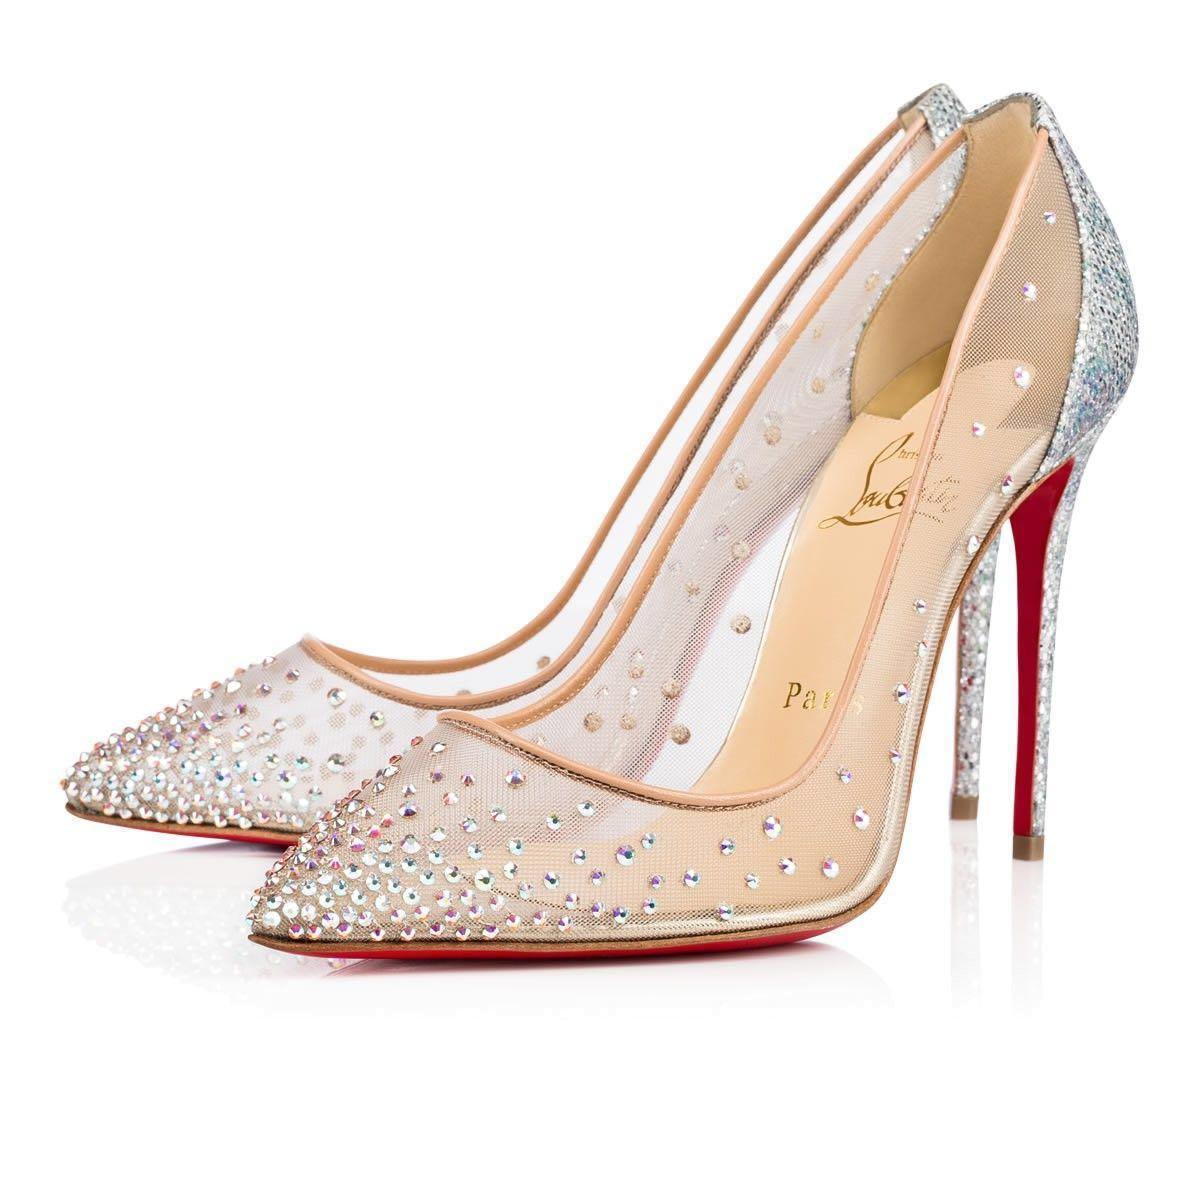 outlet store c6655 dfb92 Classy crystal mesh shiny heels (Christian Louboutin ...